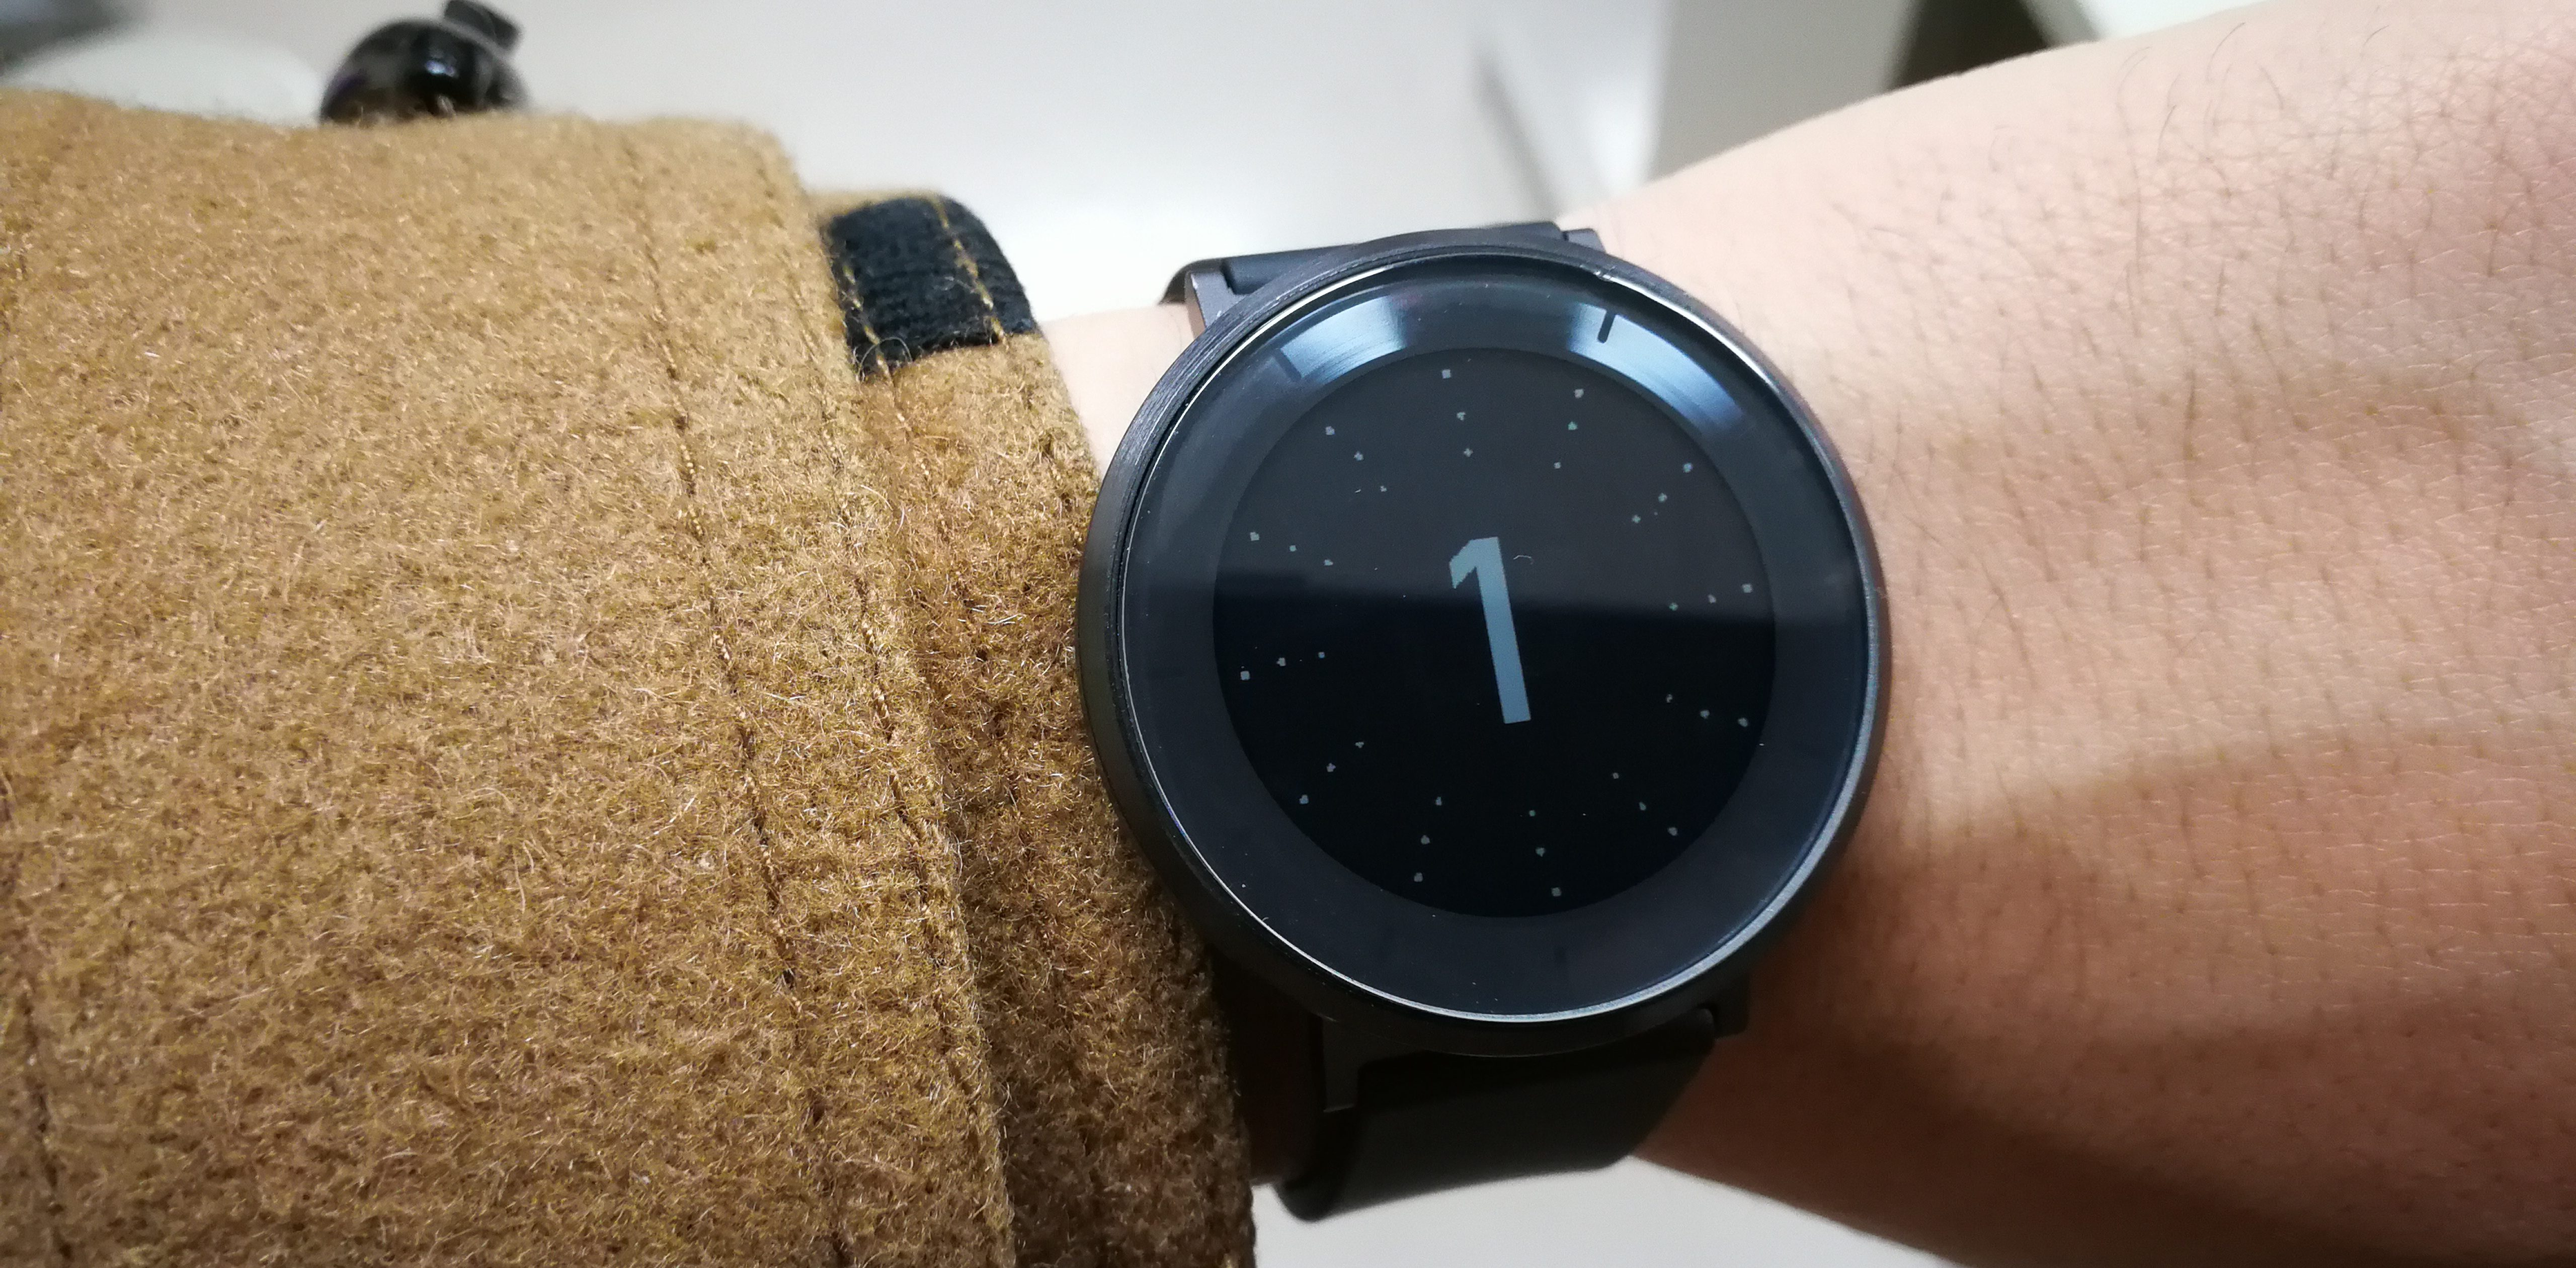 huawei fit カウントダウンを表示